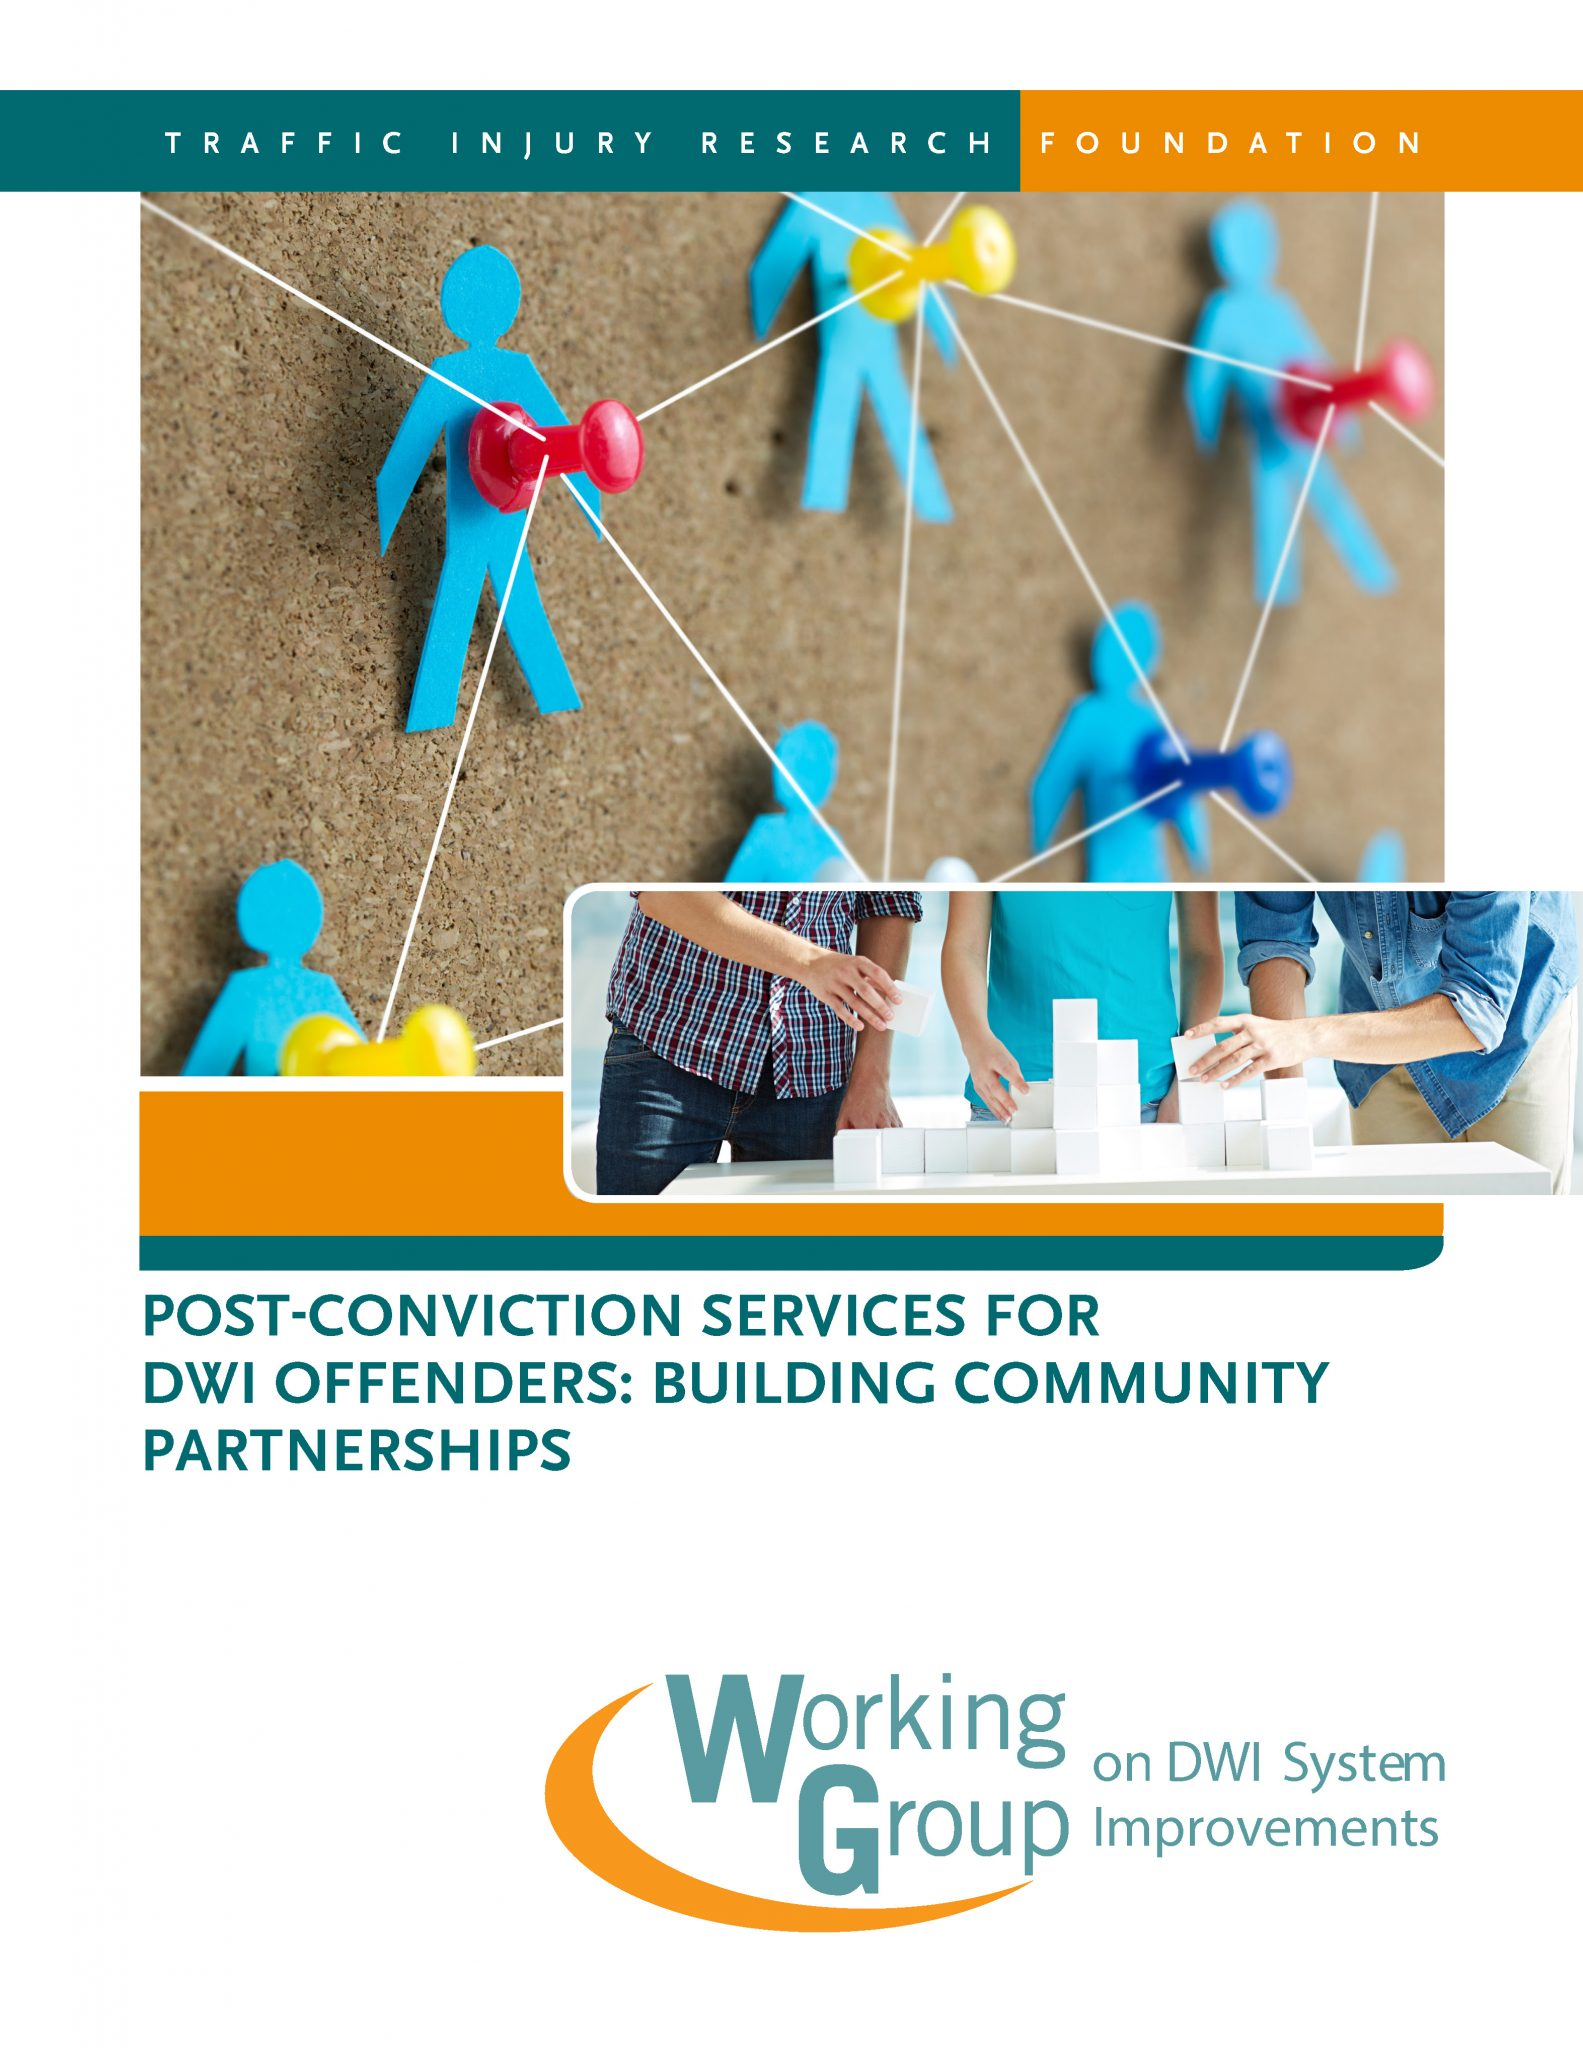 Post-Conviction Services for DWI Offenders: Building Community Partnerships